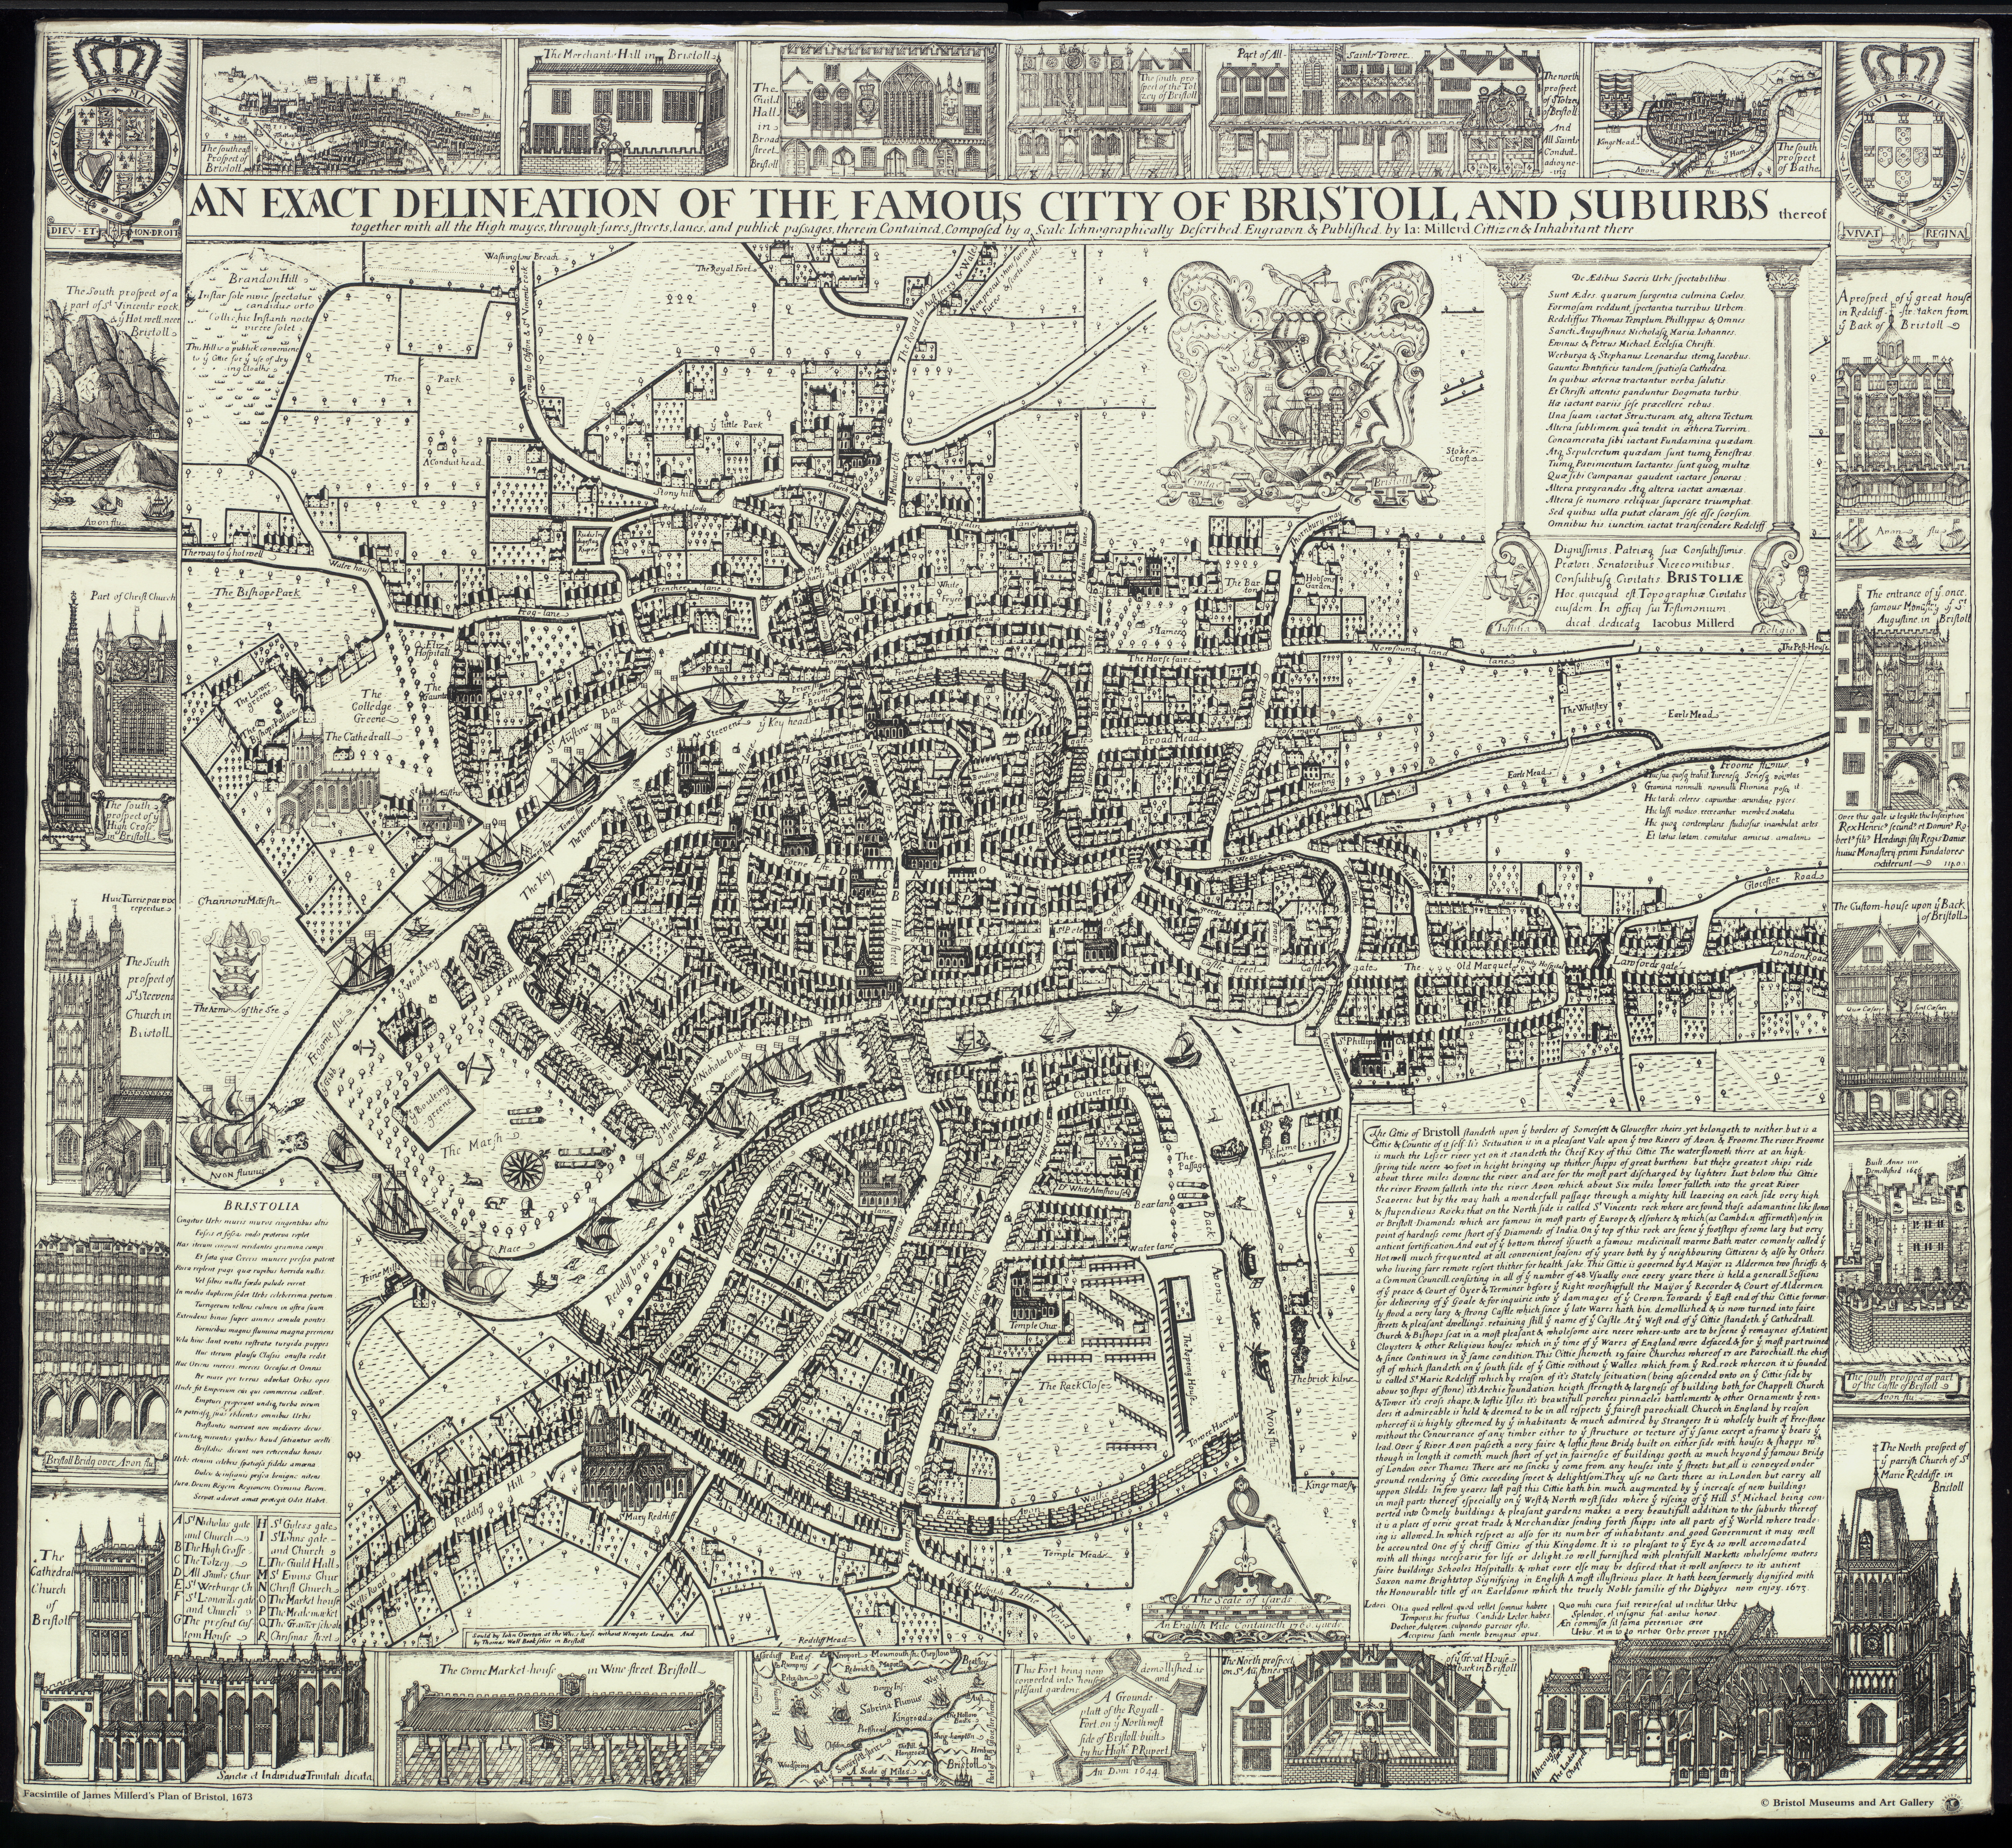 Millerd's 1673 map shows Bristol's rivers full of ships and commerce